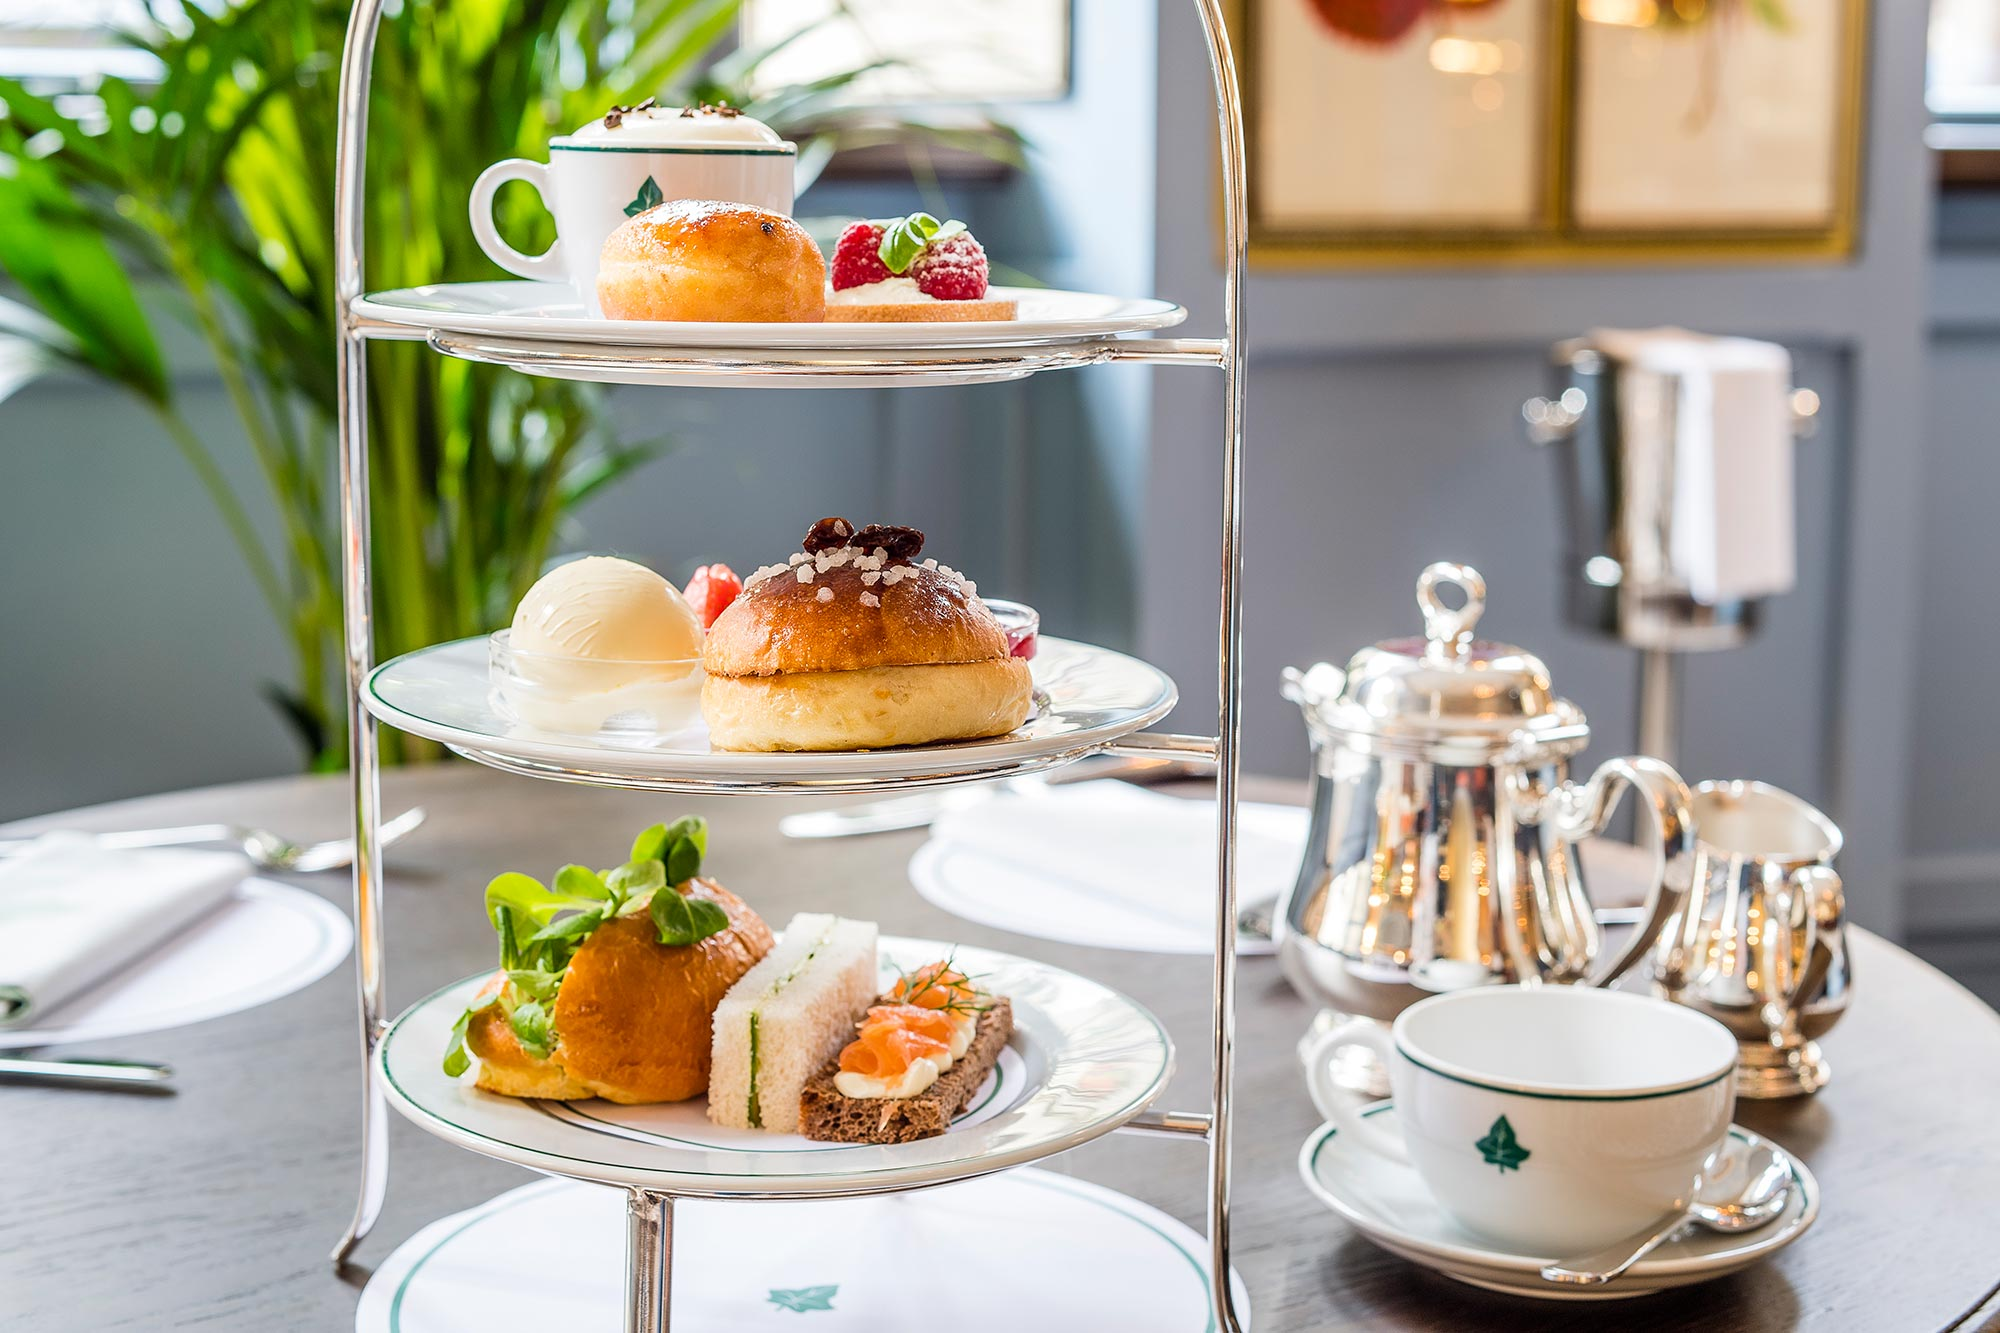 Afternoon Tea in Bath, The Ivy Bath Brasserie, Restaurant in Bath - The Ivy Bath Brasserie